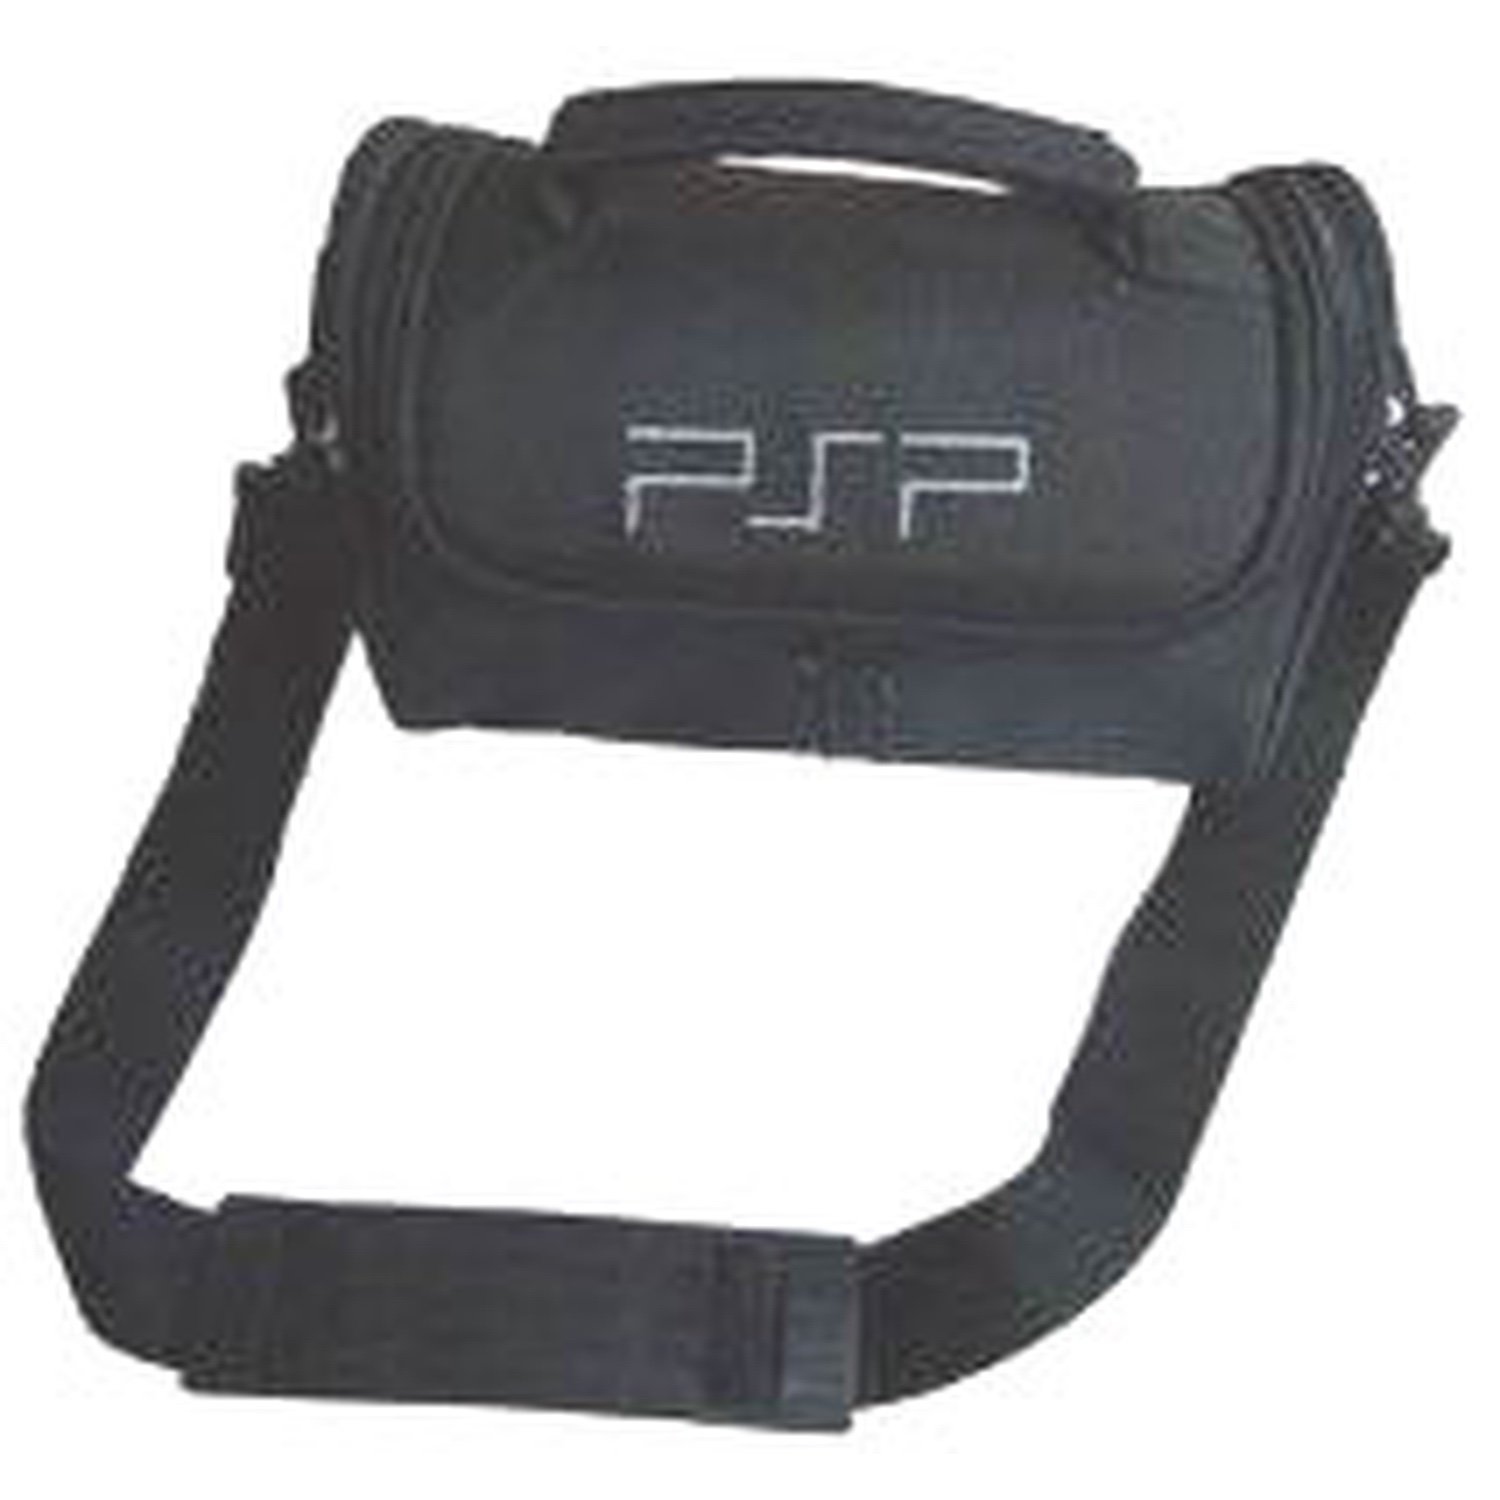 Carrying Case for PSP/PSP 2000 SLIM/PSP 3000 and accesories цена и фото